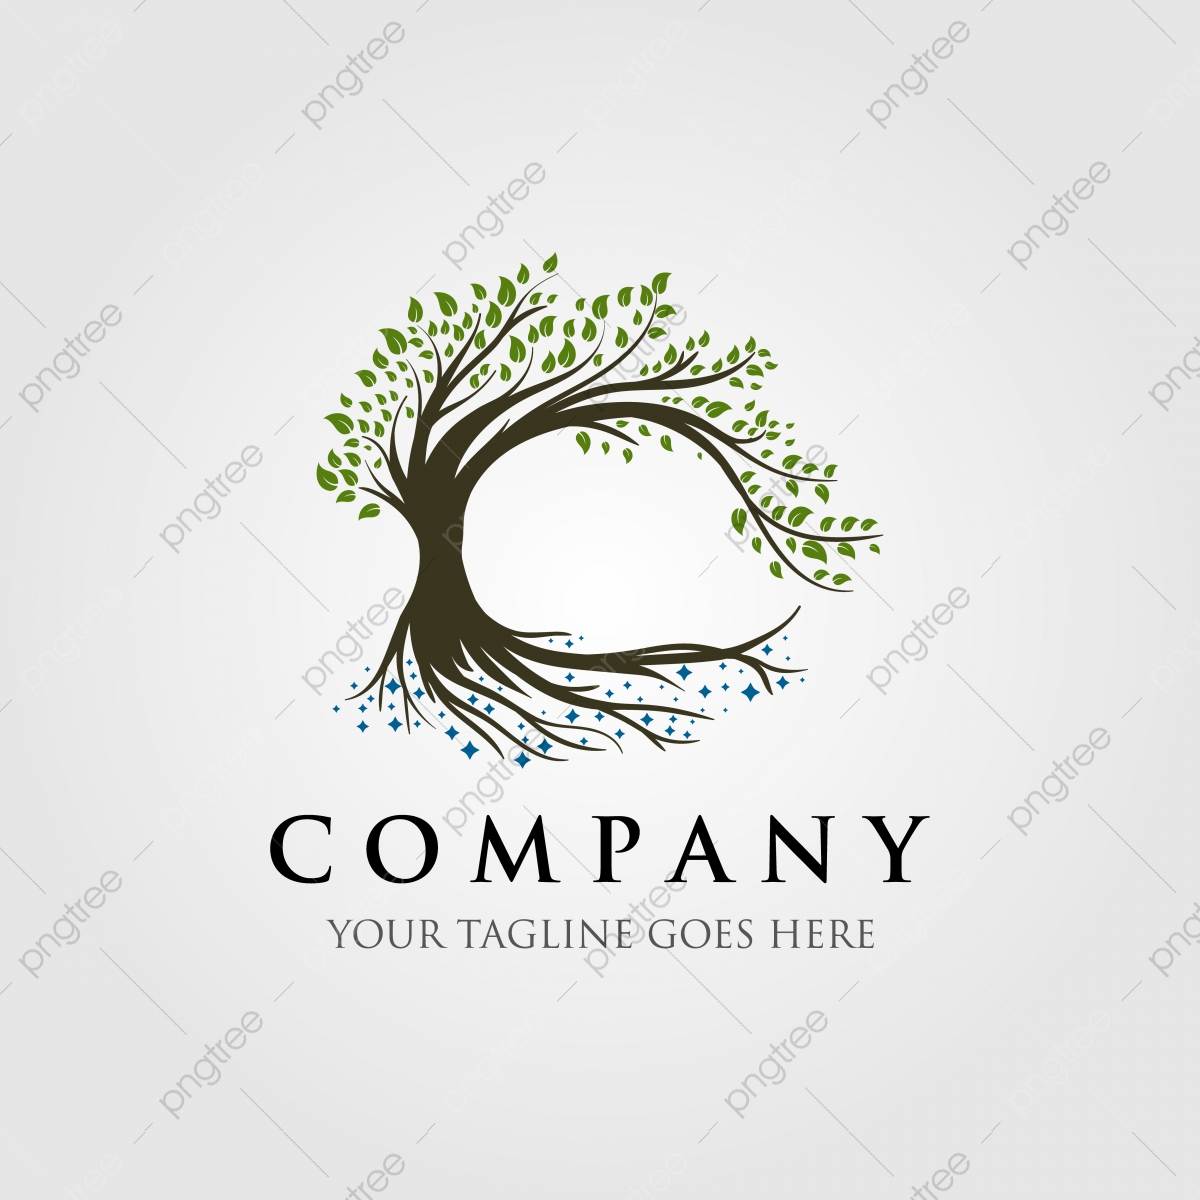 Tree Logo Png Images Vector And Psd Files Free Download On Pngtree